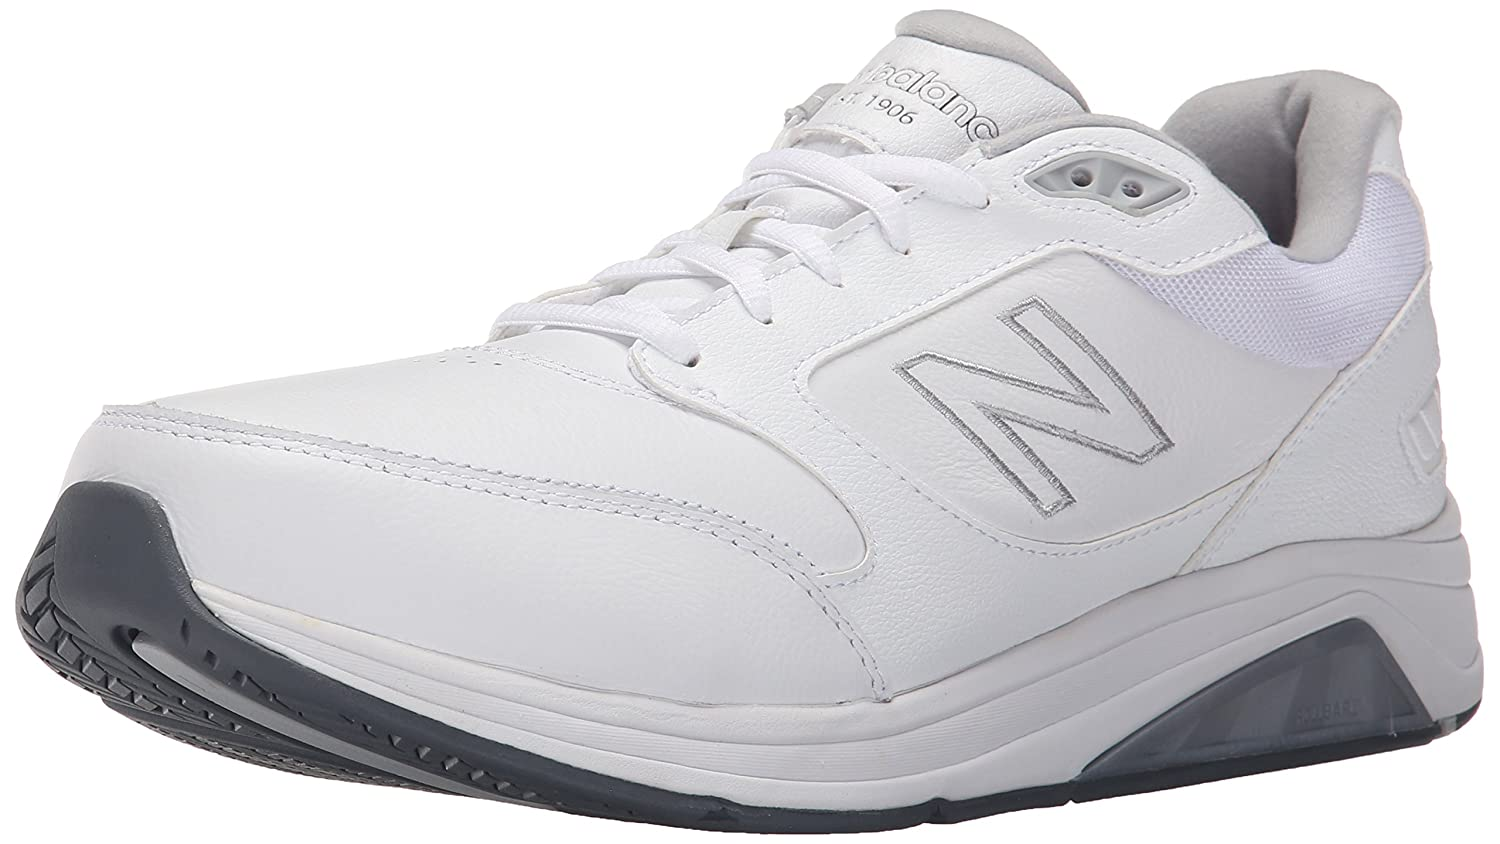 New Balance Men's MW928VK Walking Shoe 8 4E US|White